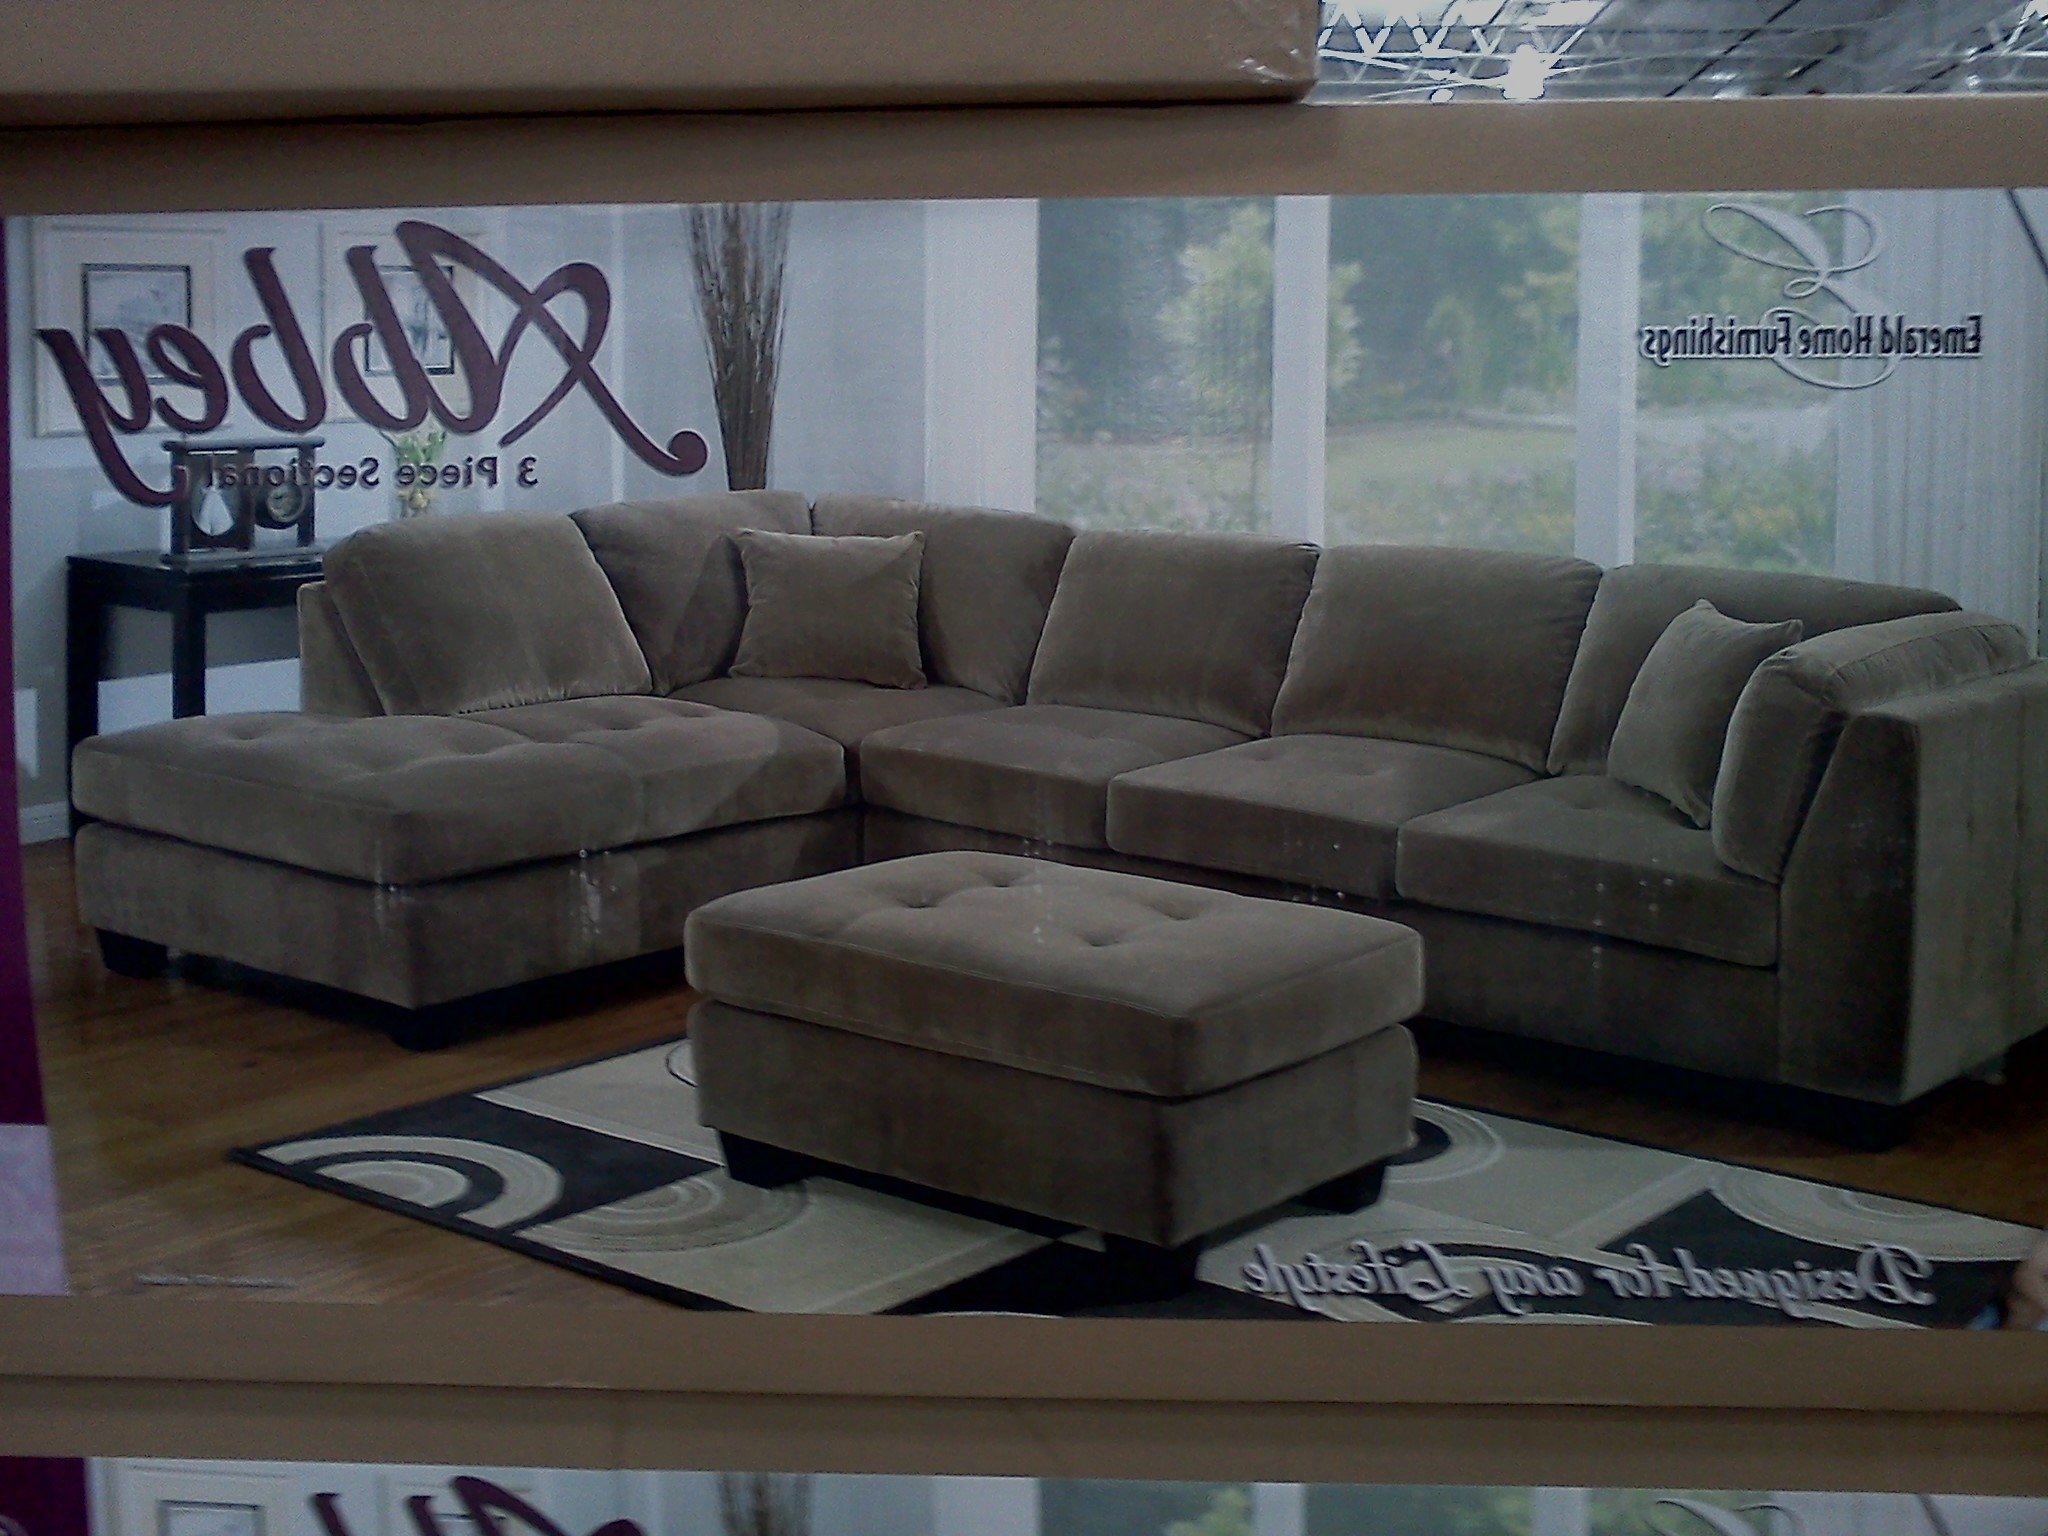 Home Furniture Sectional Sofas Regarding Most Recent Costco Emerald Home Modular Sectional Slickdeals – Kaf Mobile (View 7 of 15)